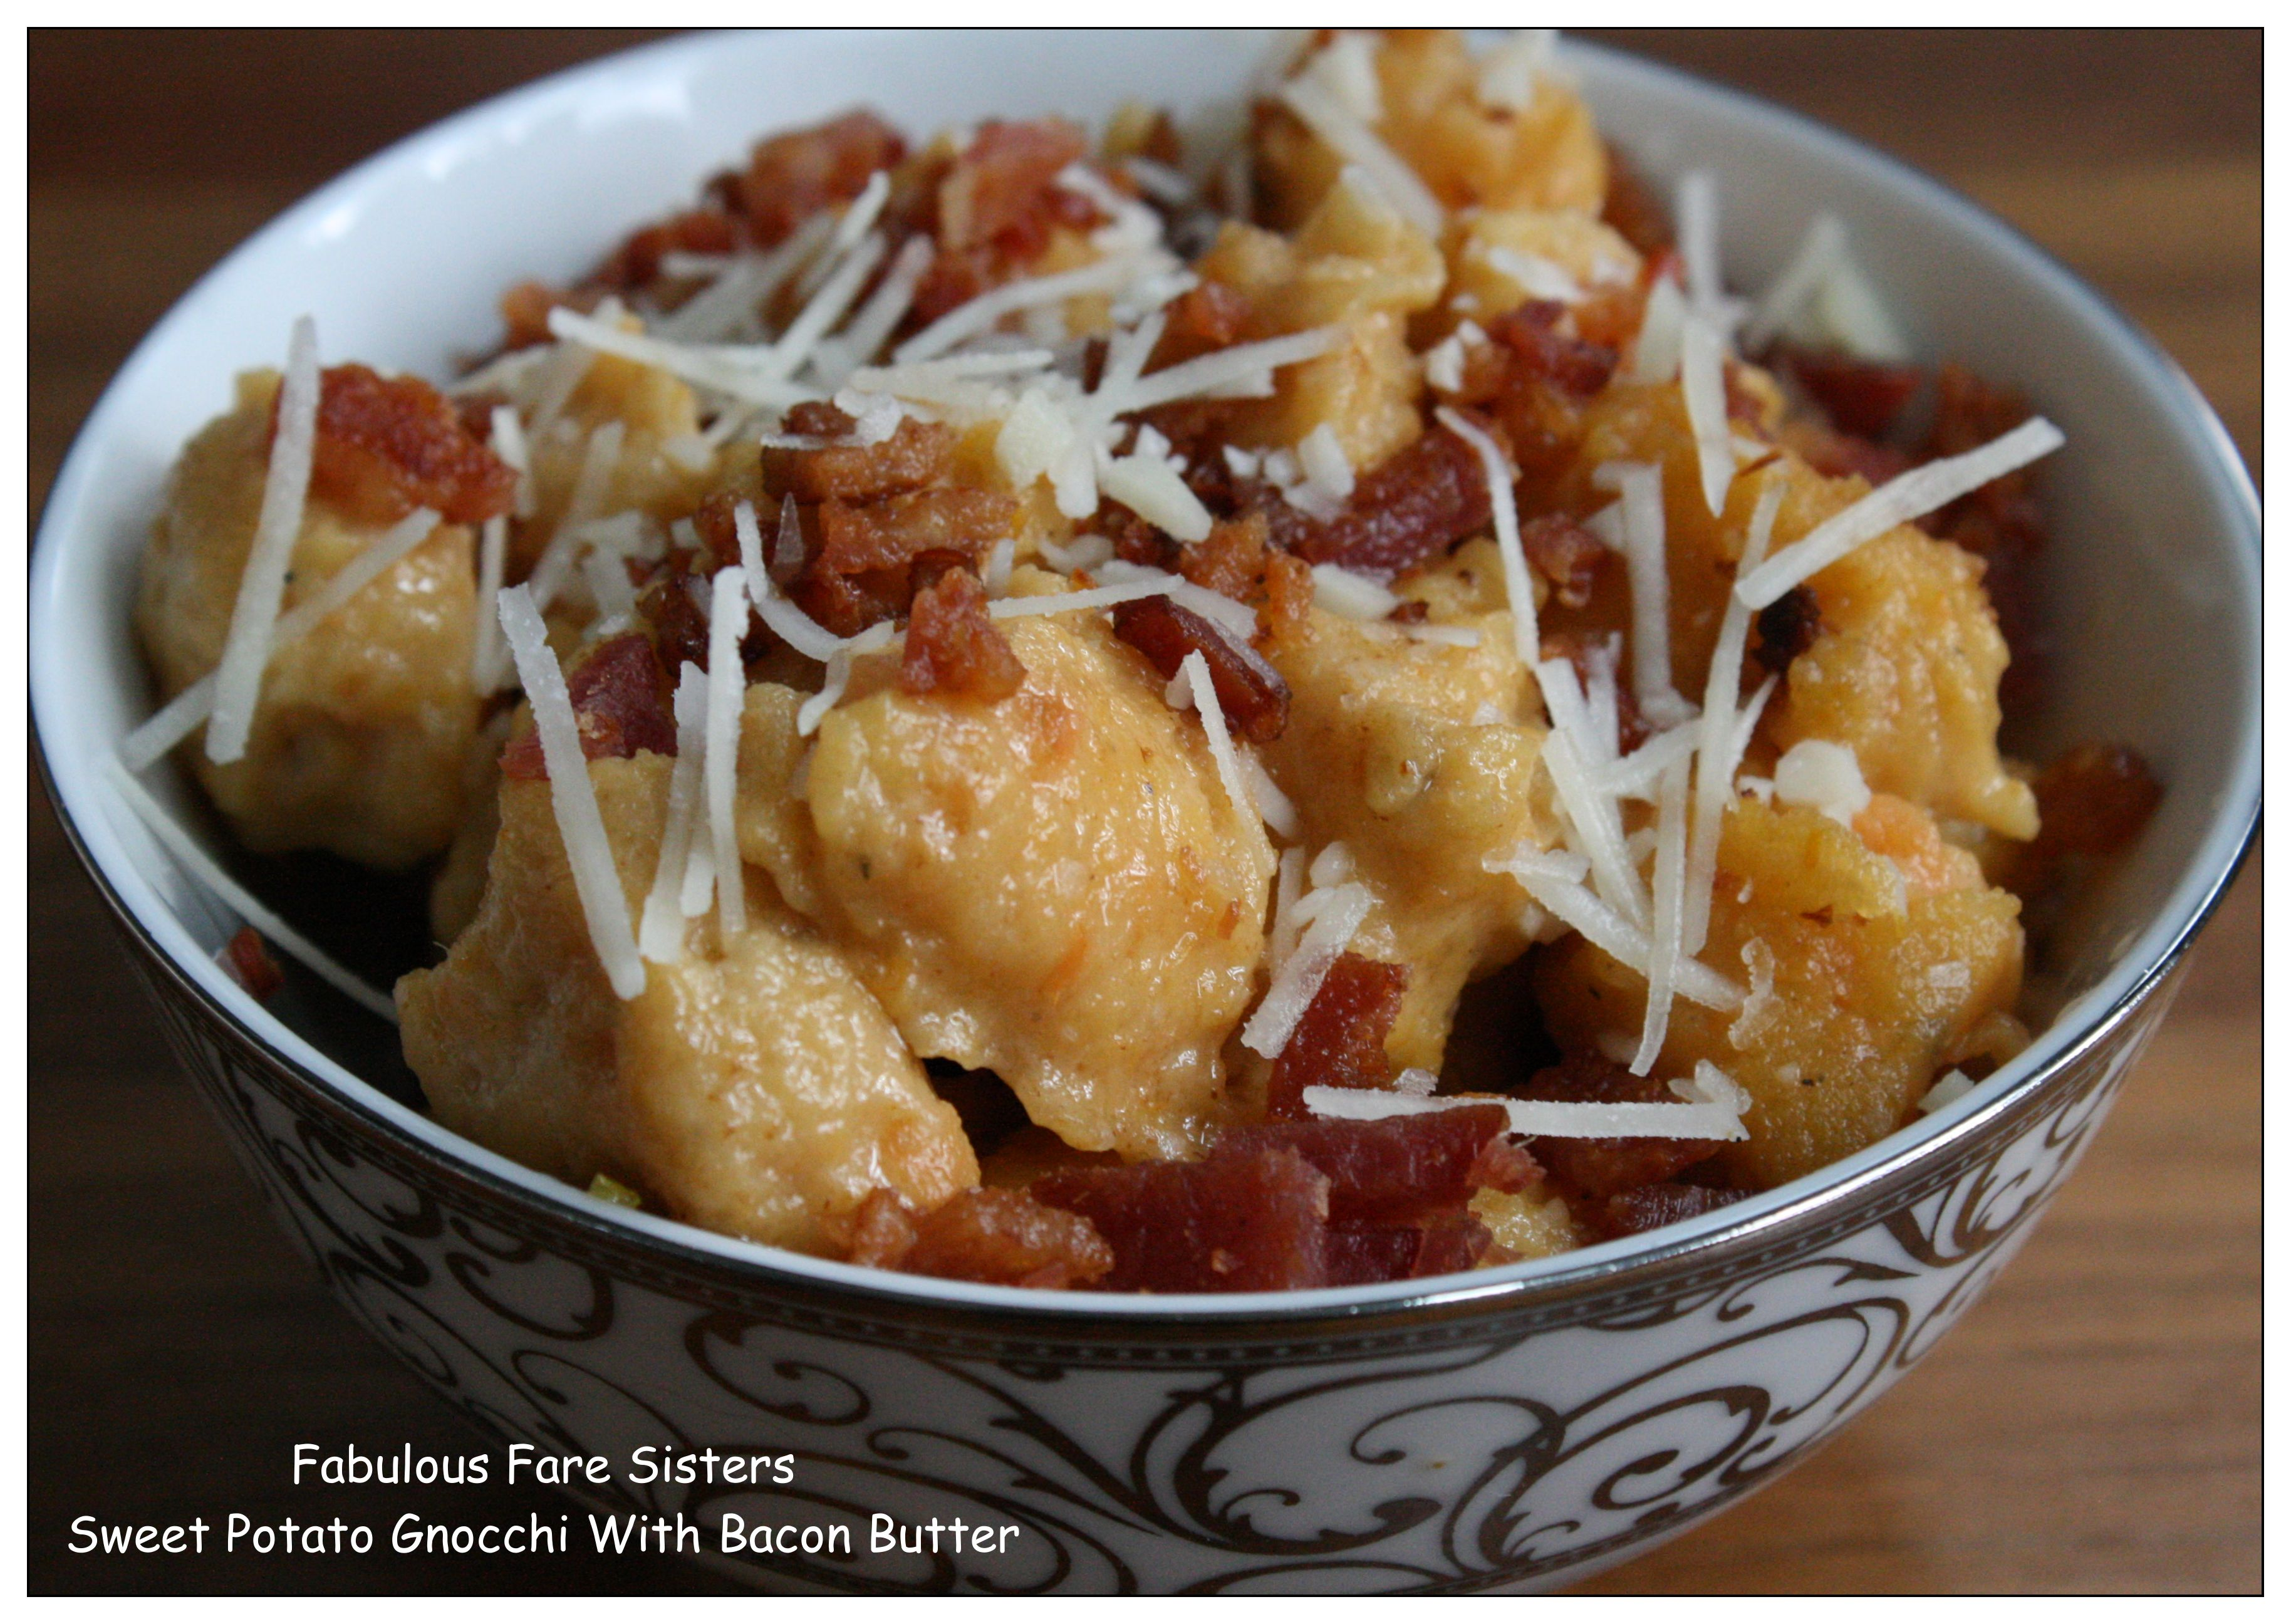 sweet-potato-gnocchi-with-bacon-butter-2